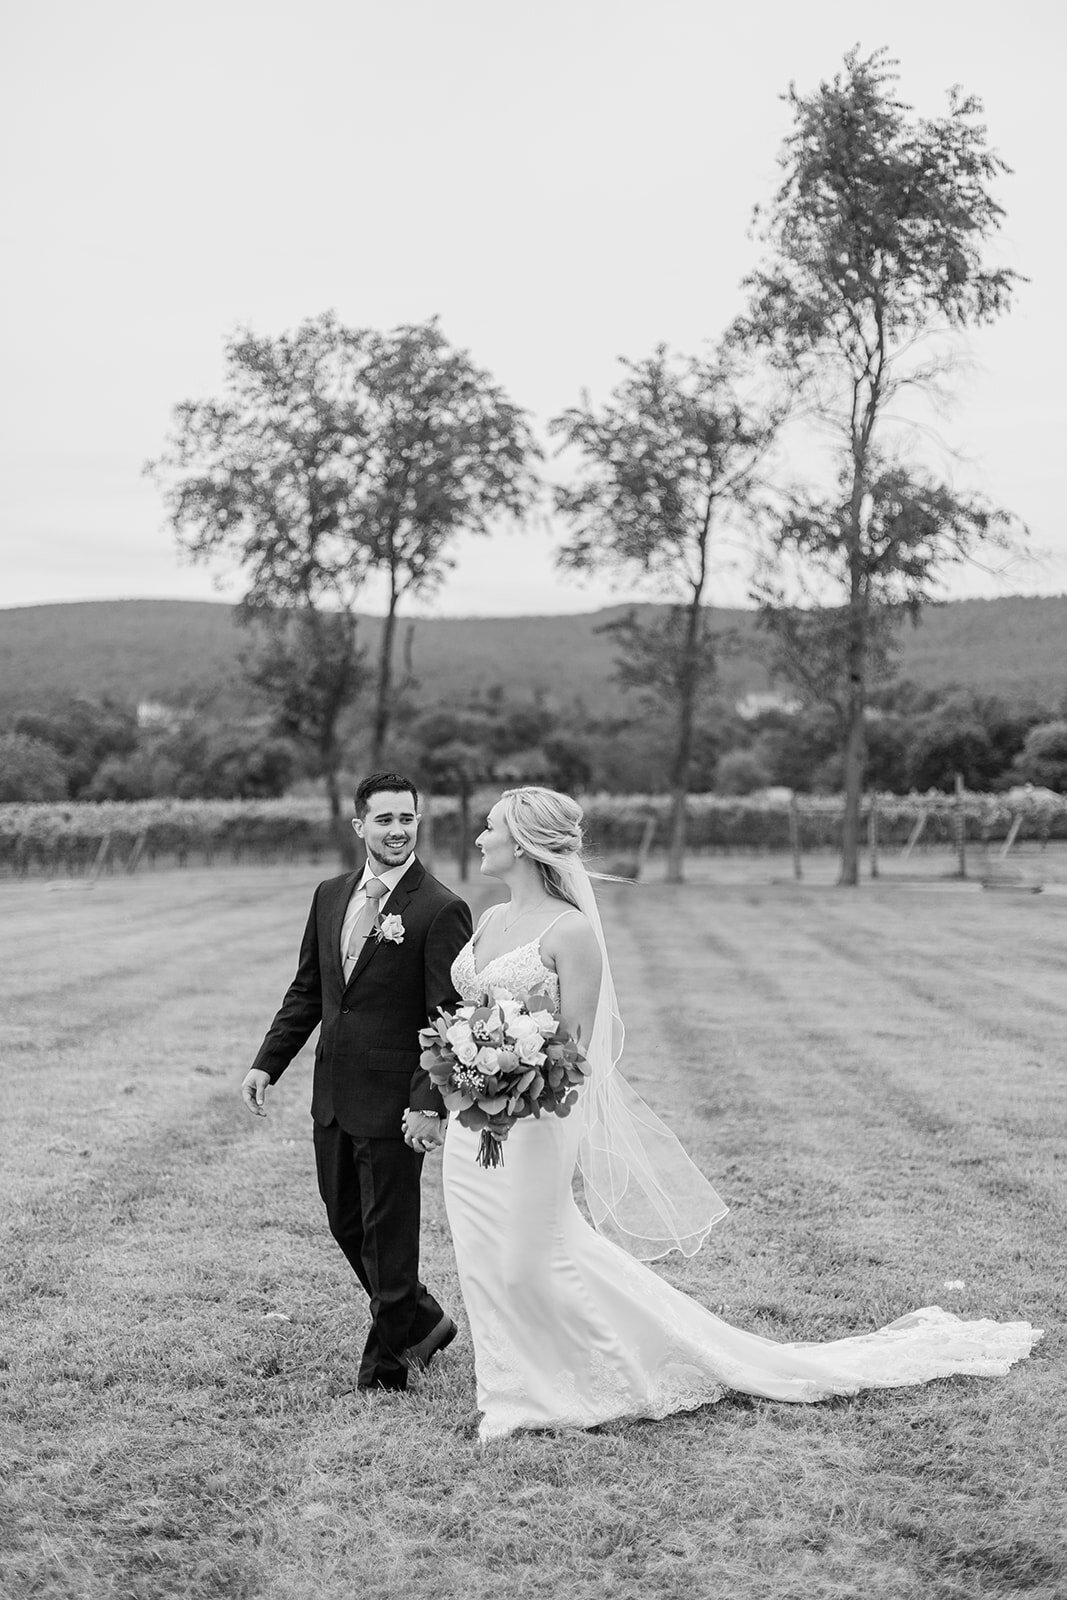 Holly&Jon_KaleroVineyard_Wedding_08212020_KelseyMariePhotography-5334